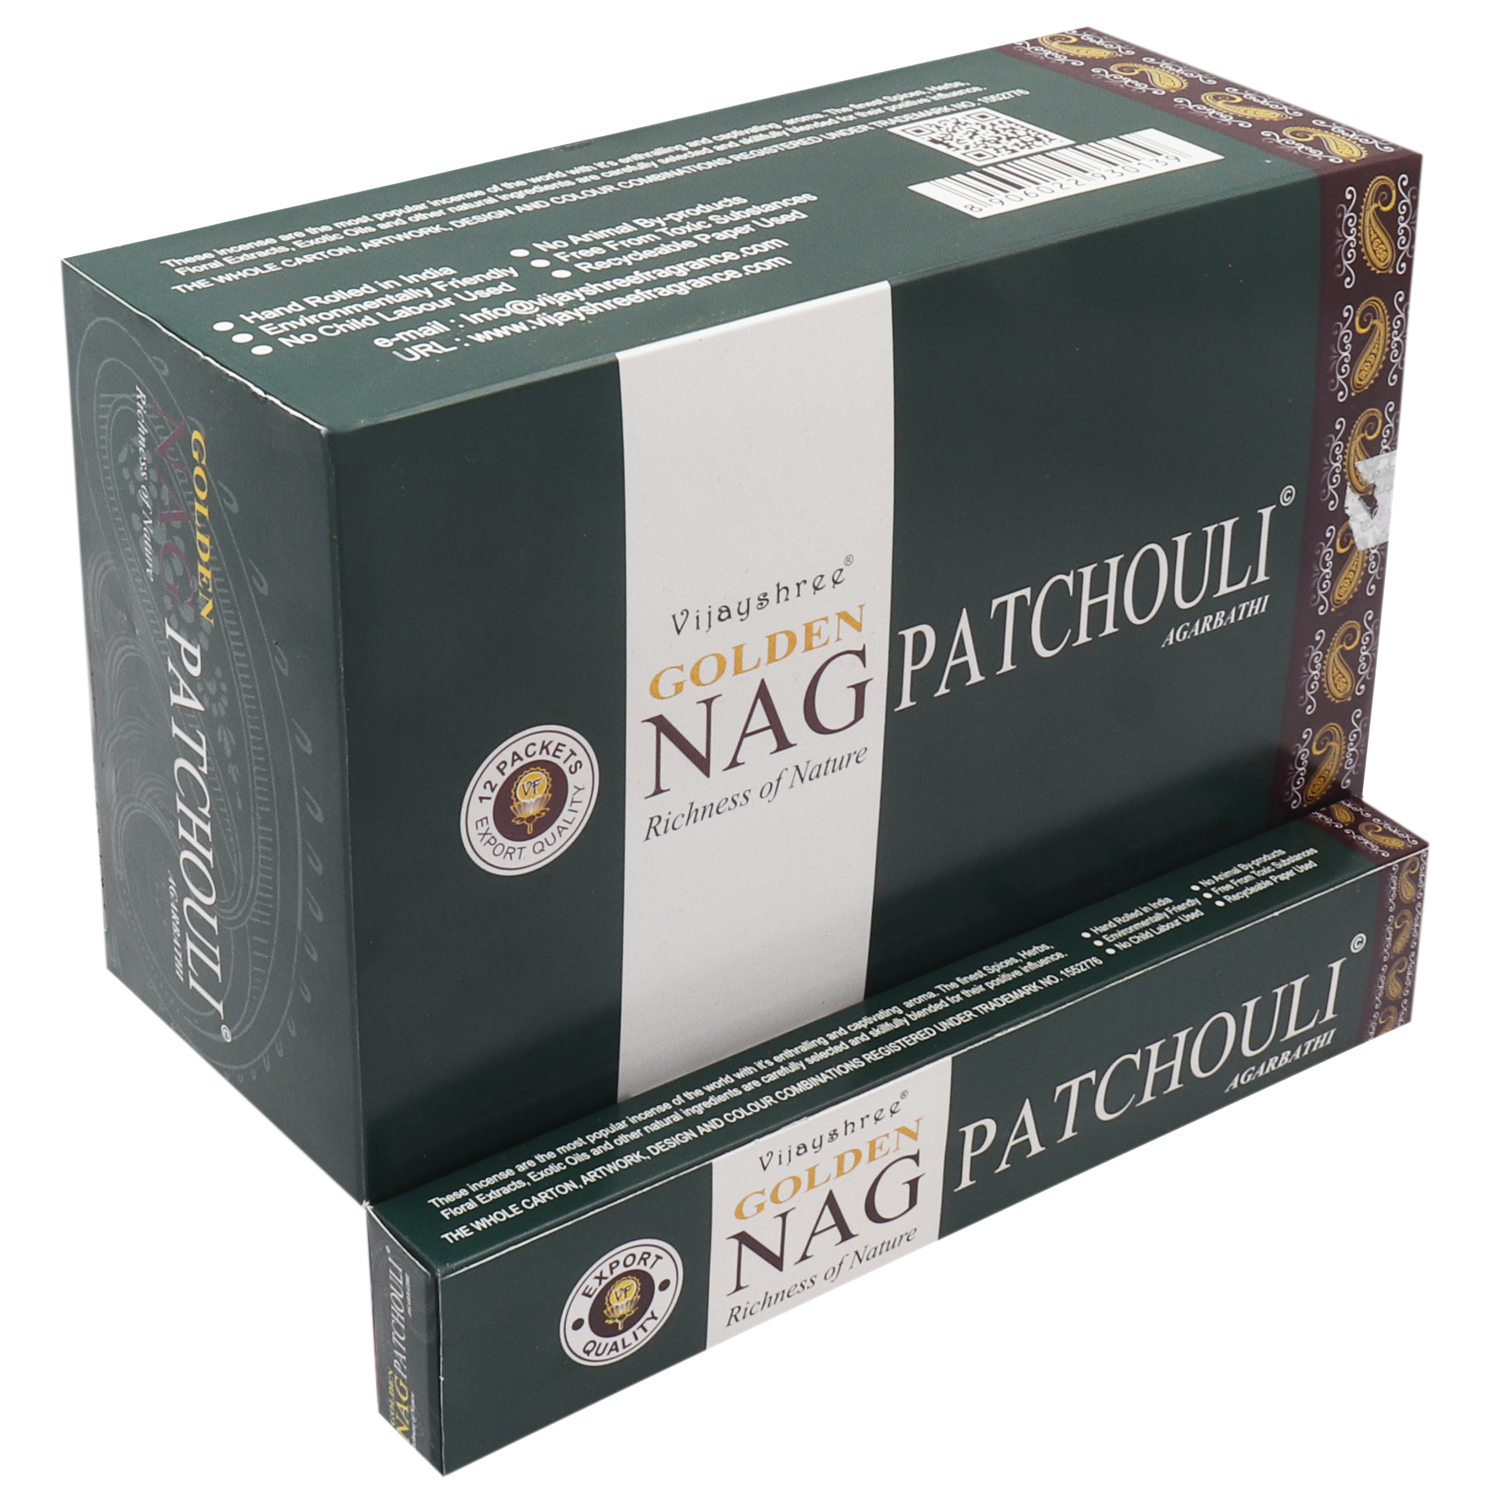 GOLDEN NAG PATCHOULI 15 GM